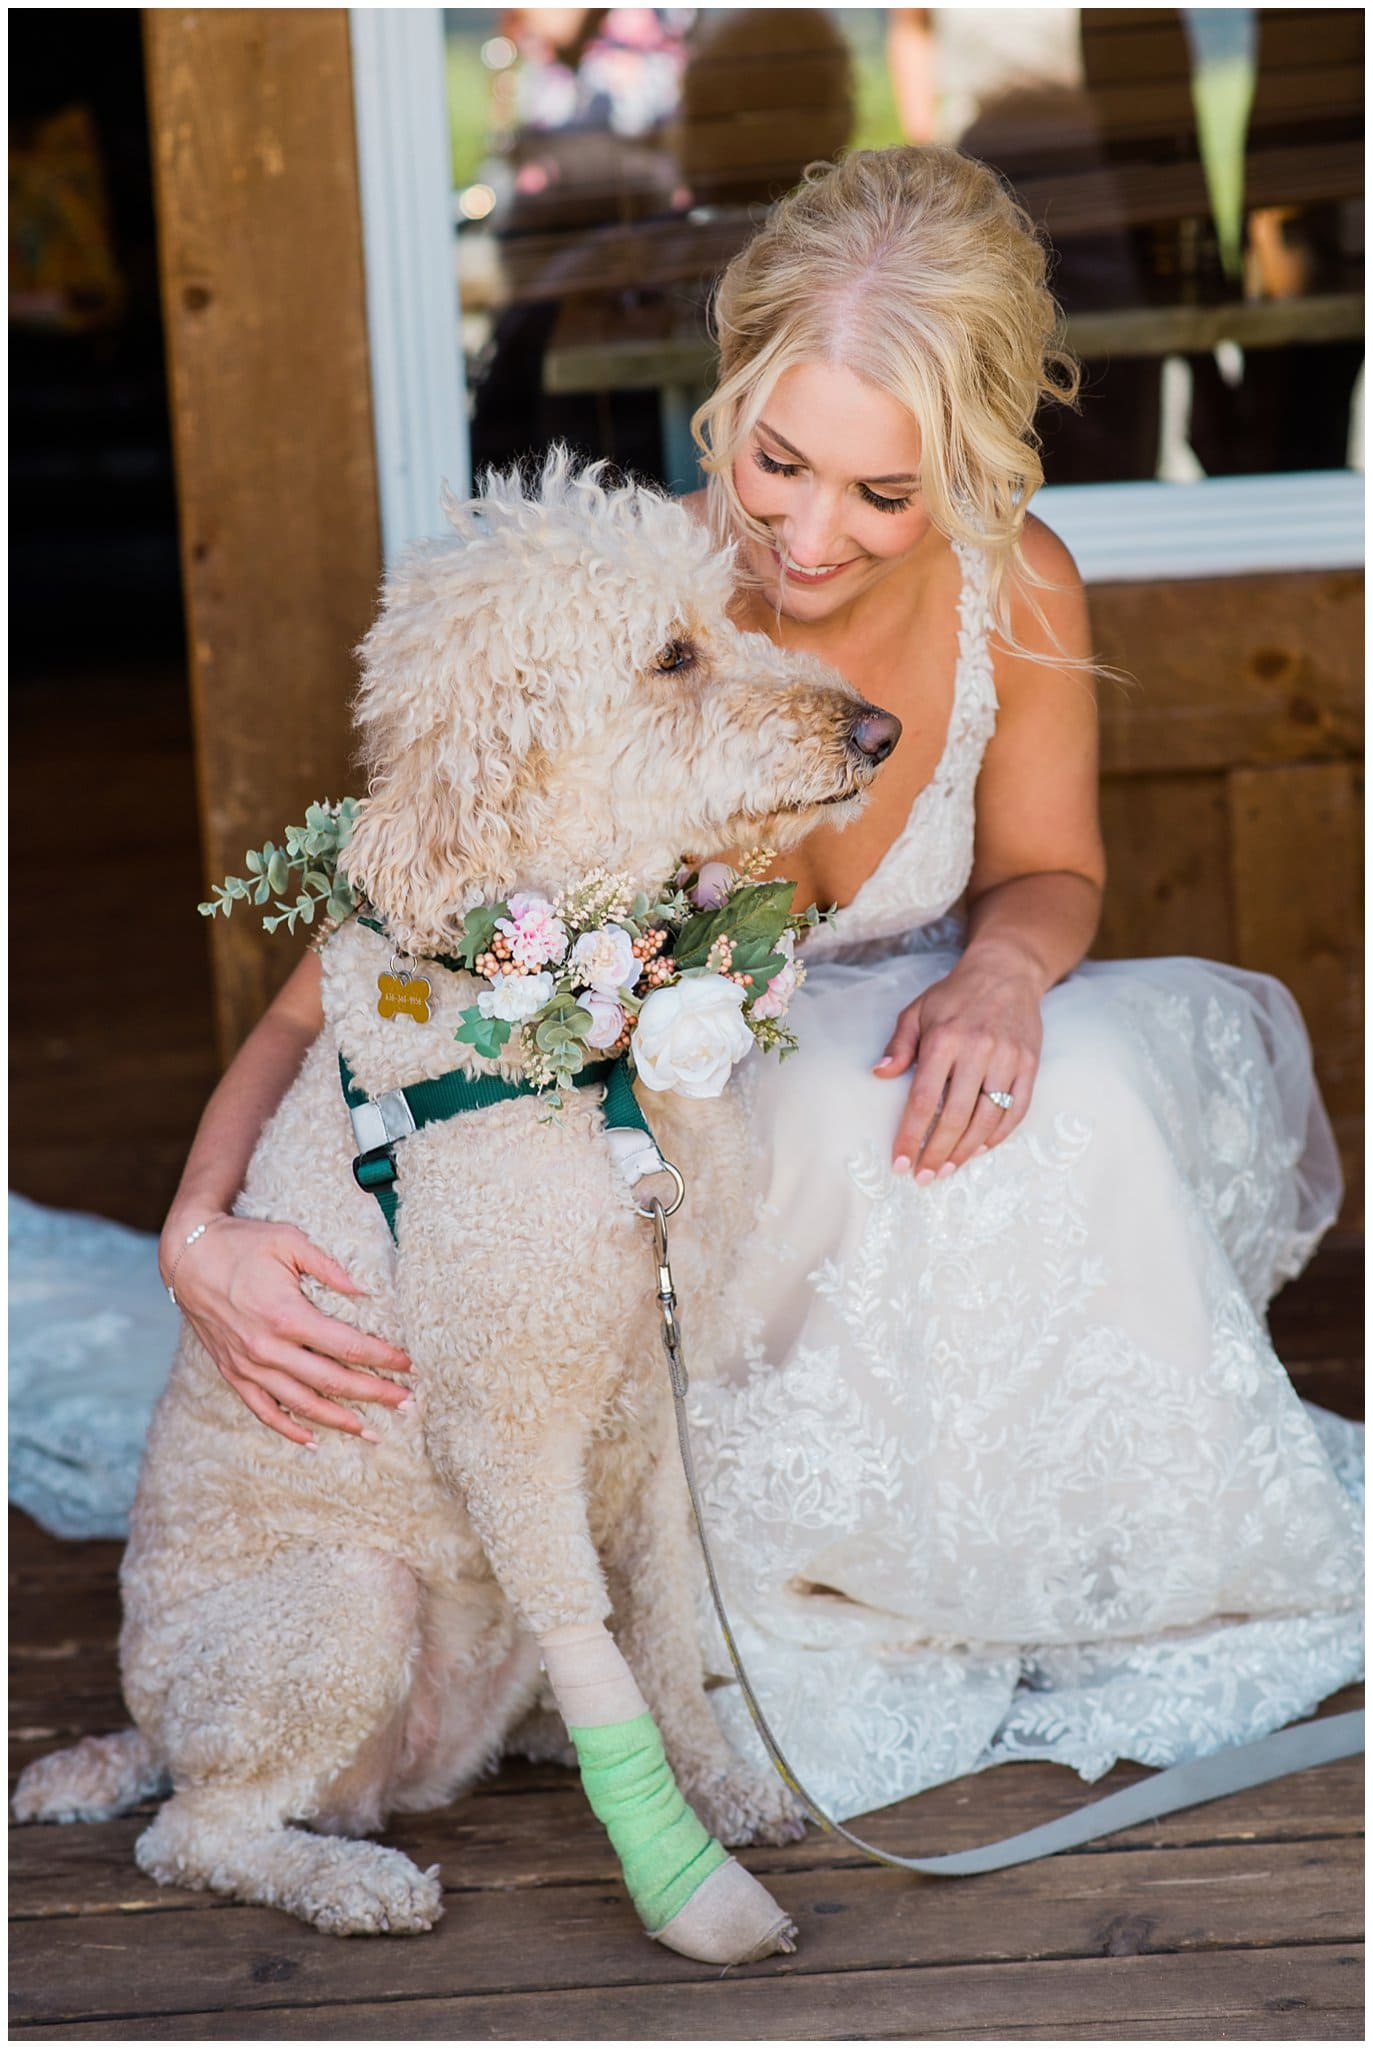 Bride and flower dog at Summer Piney River Ranch wedding by Vail wedding photographer Jennie Crate, Photographer